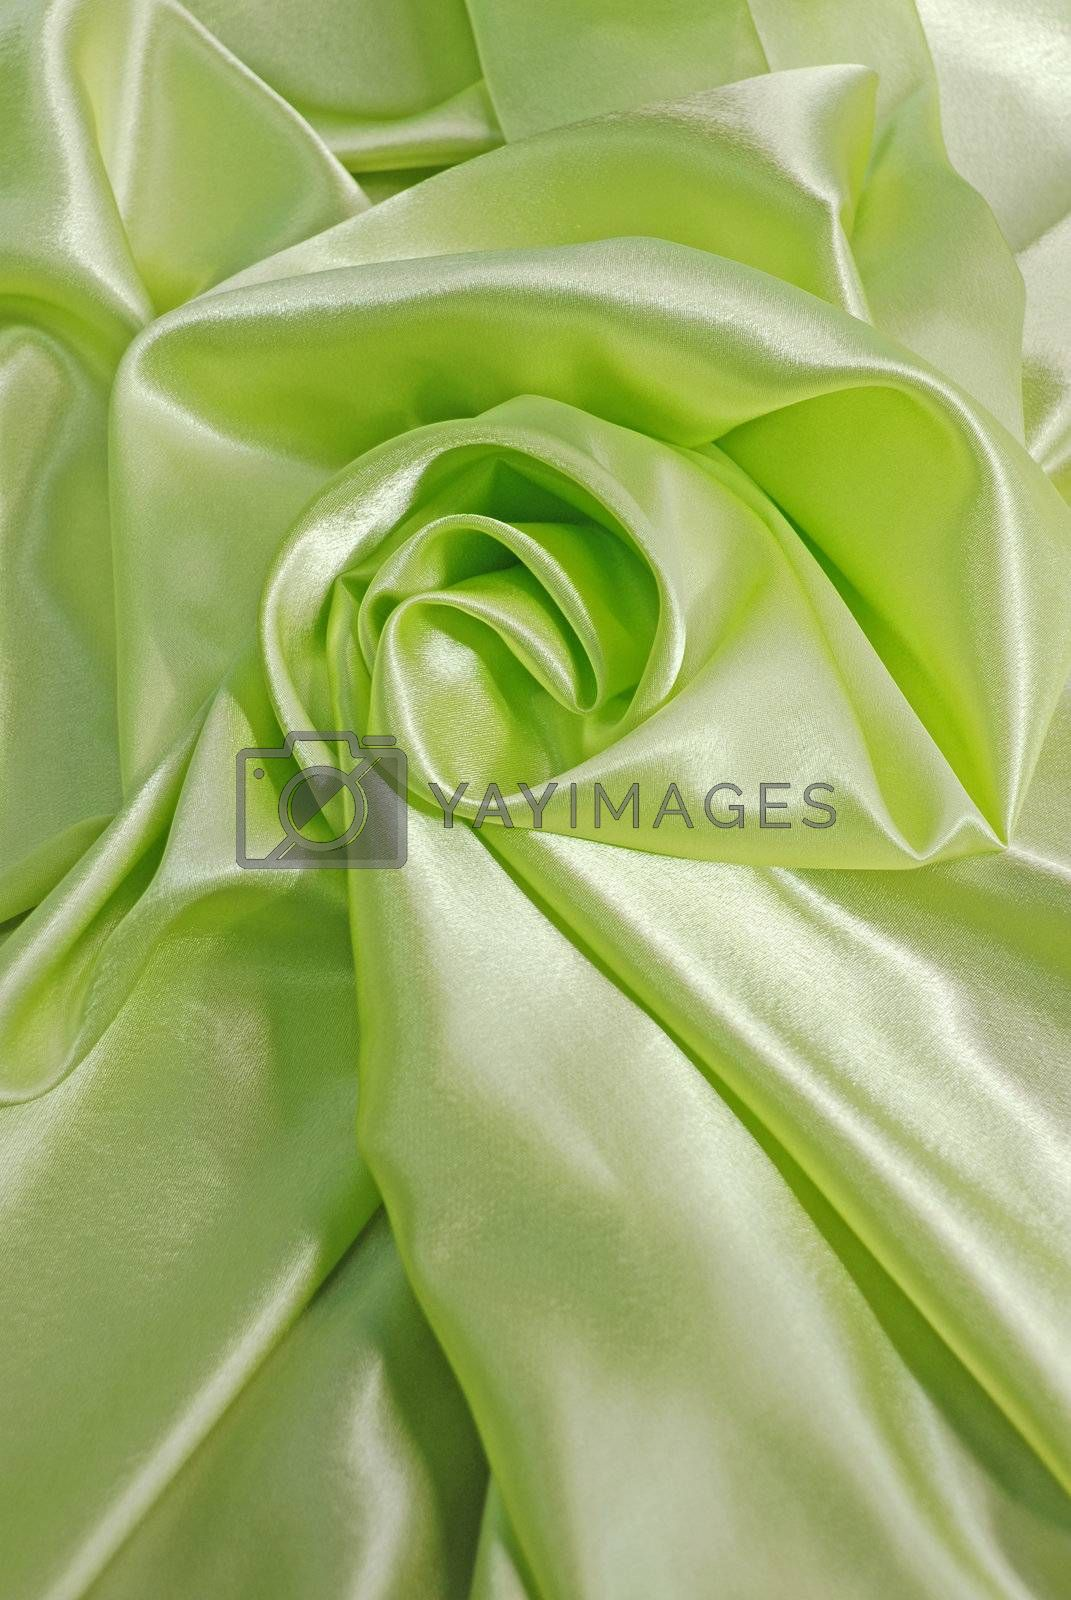 Green satin with folds